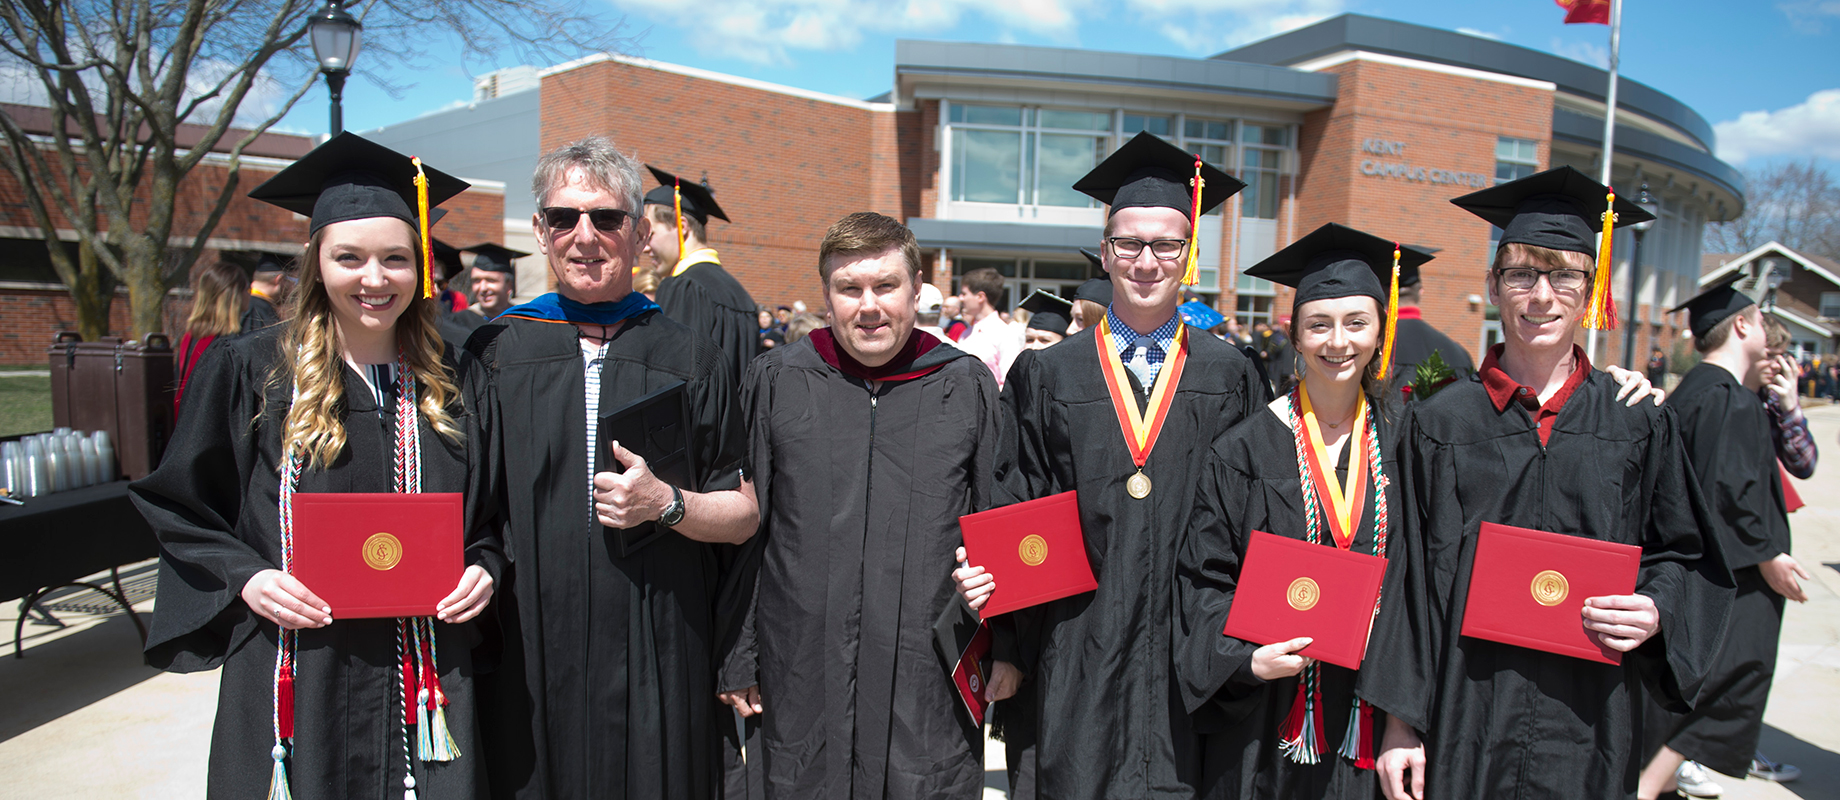 Marty Feeney poses with students at commencement.